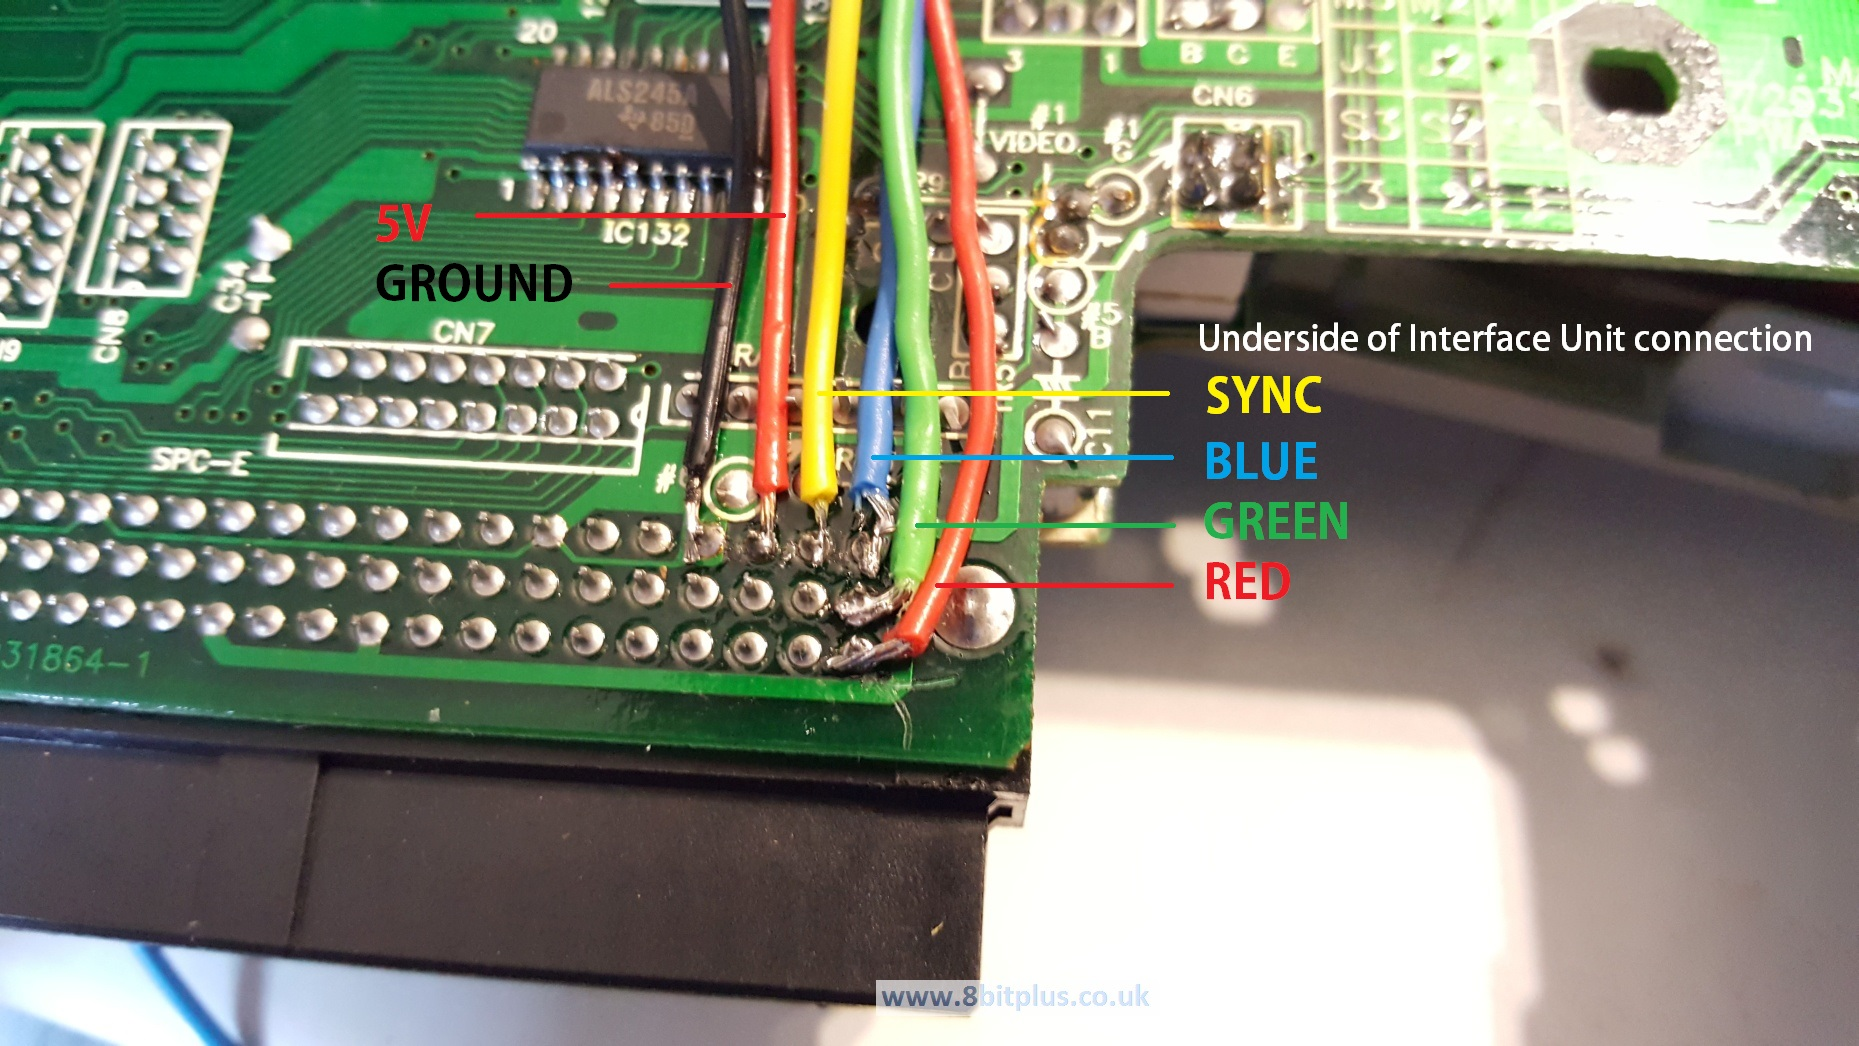 Nec Pc Engine Interface Unit Rgb Mod 8bitplus Modded Controller Wiring Diagram Pce Connection